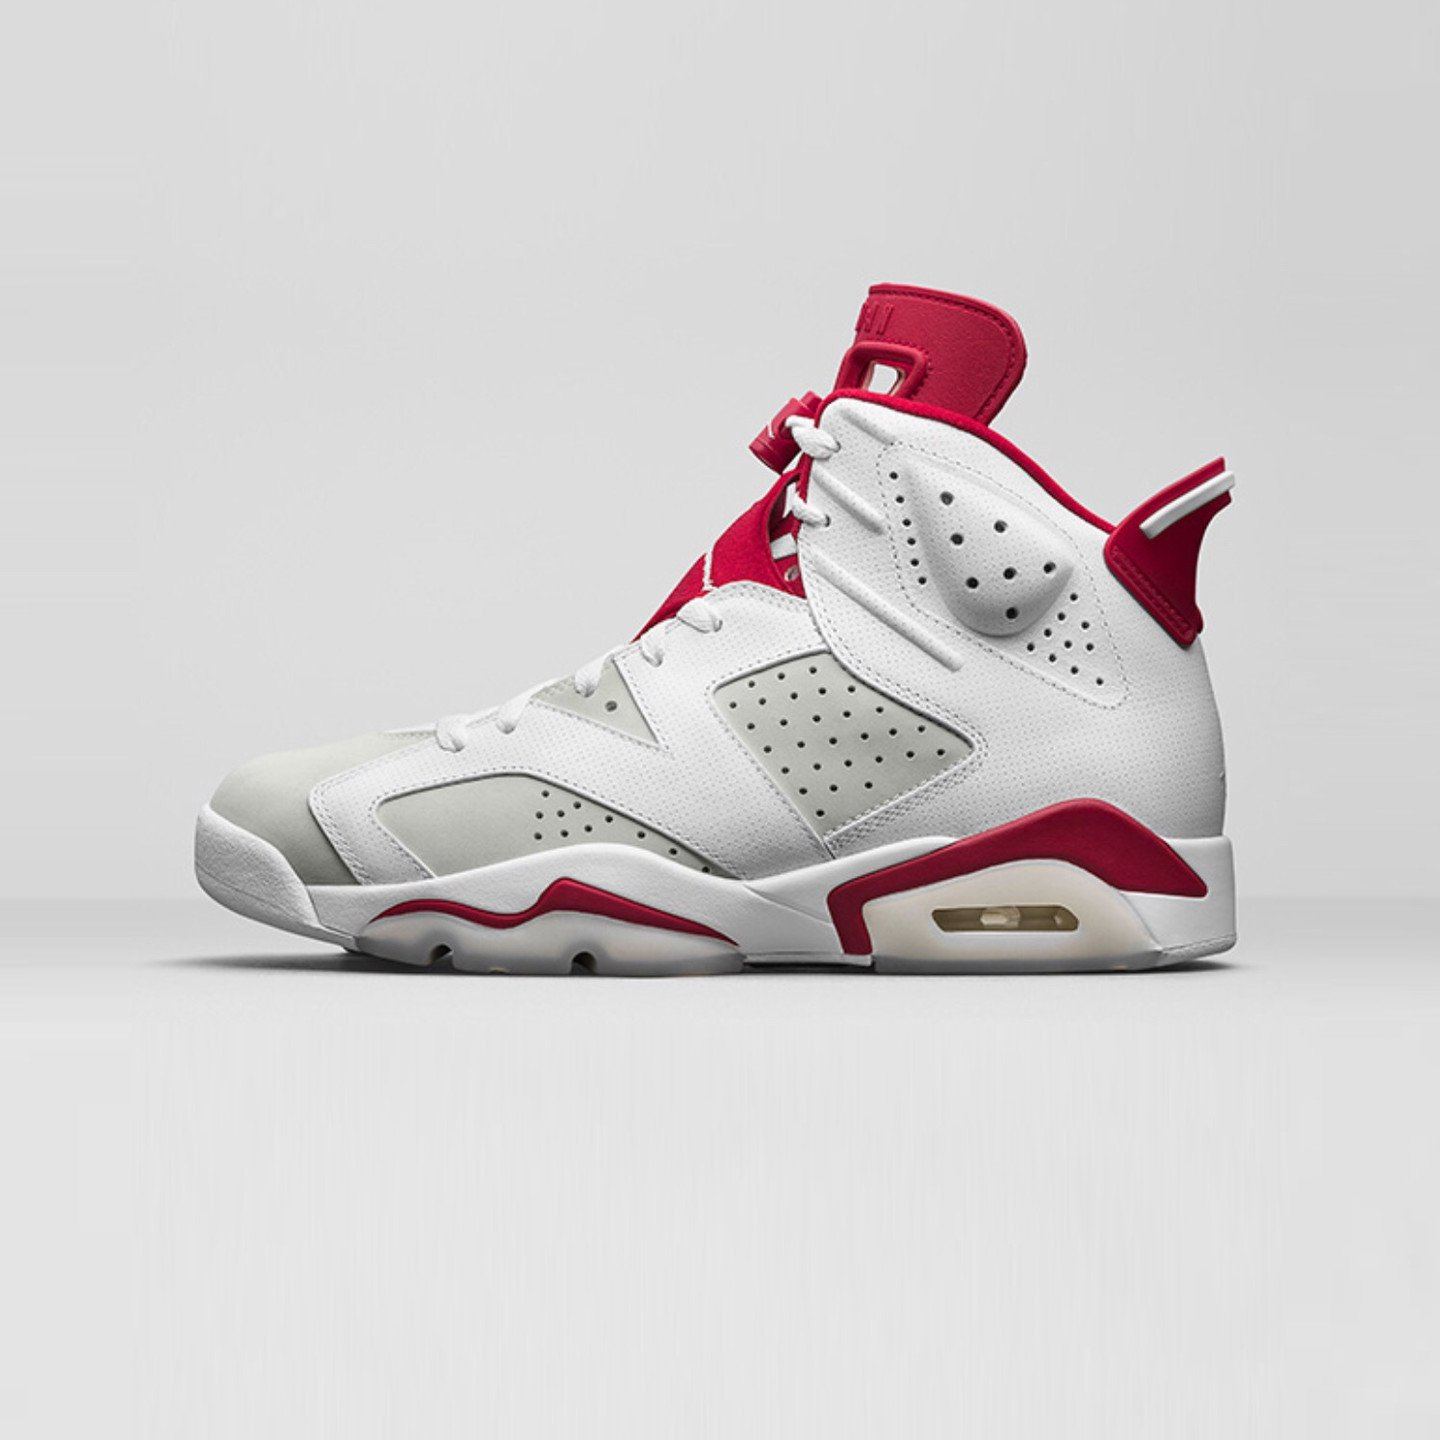 Jordan Air Jordan 6 Retro Alternate GS White / Pure Platinum / Gym Red 384665-113-38.5